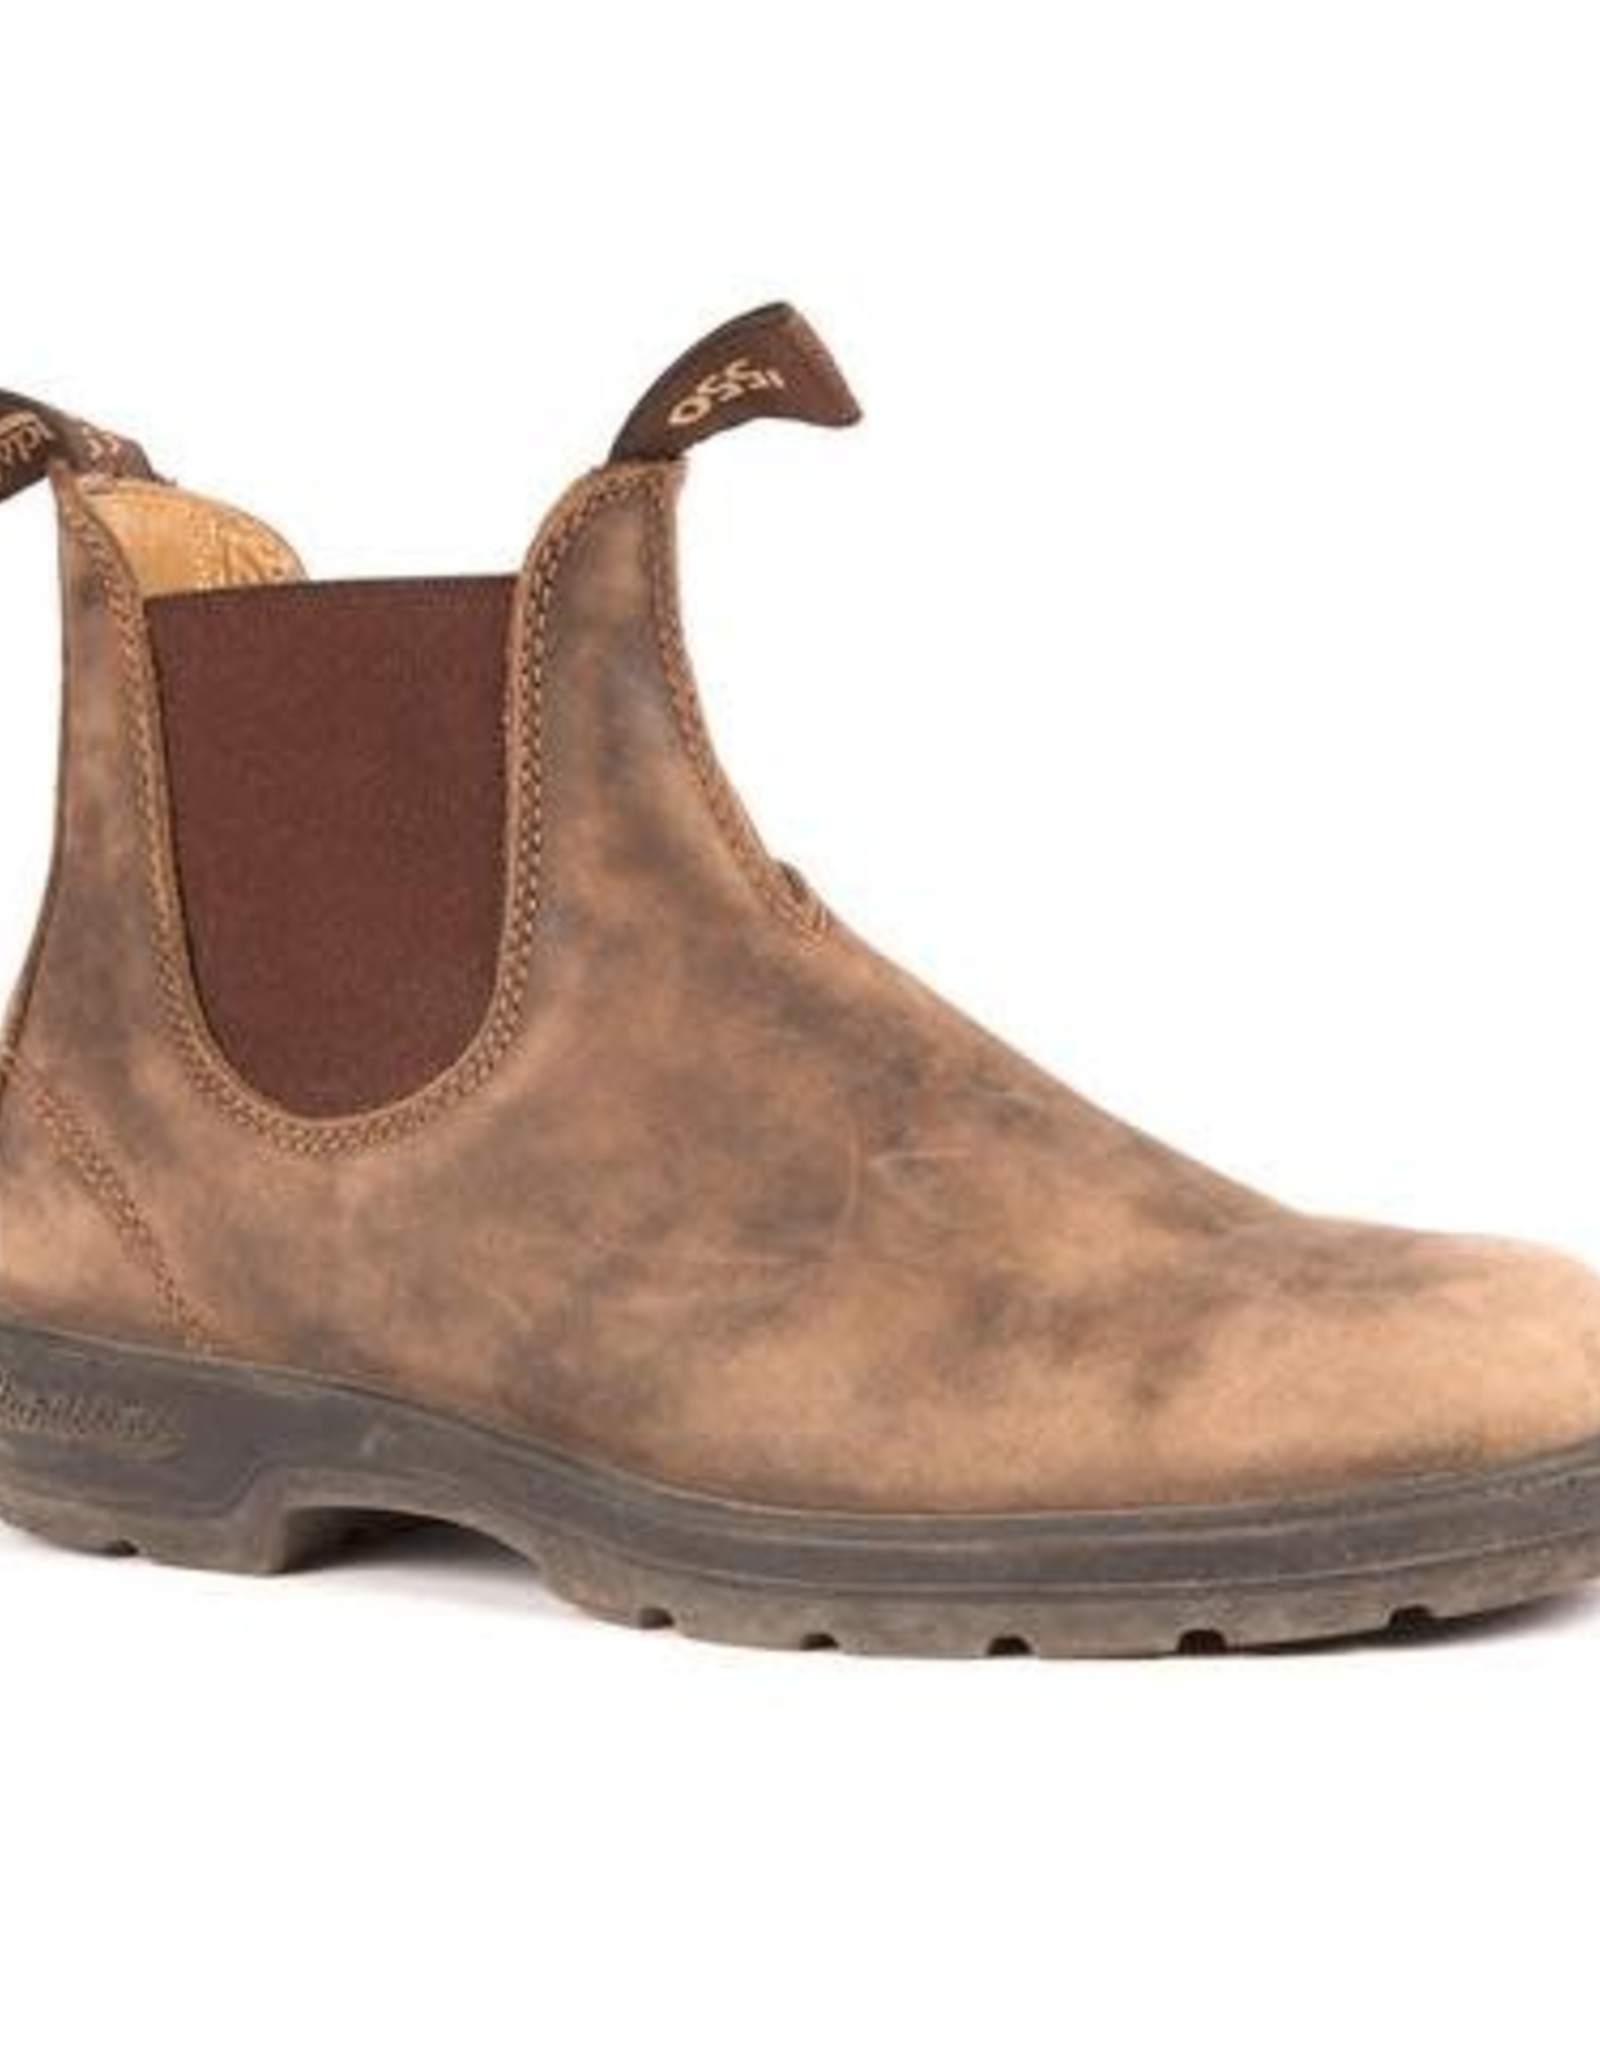 Blundstone Blundstone, Leather Lined Rustic Brown 585, 1WIDTH, 7